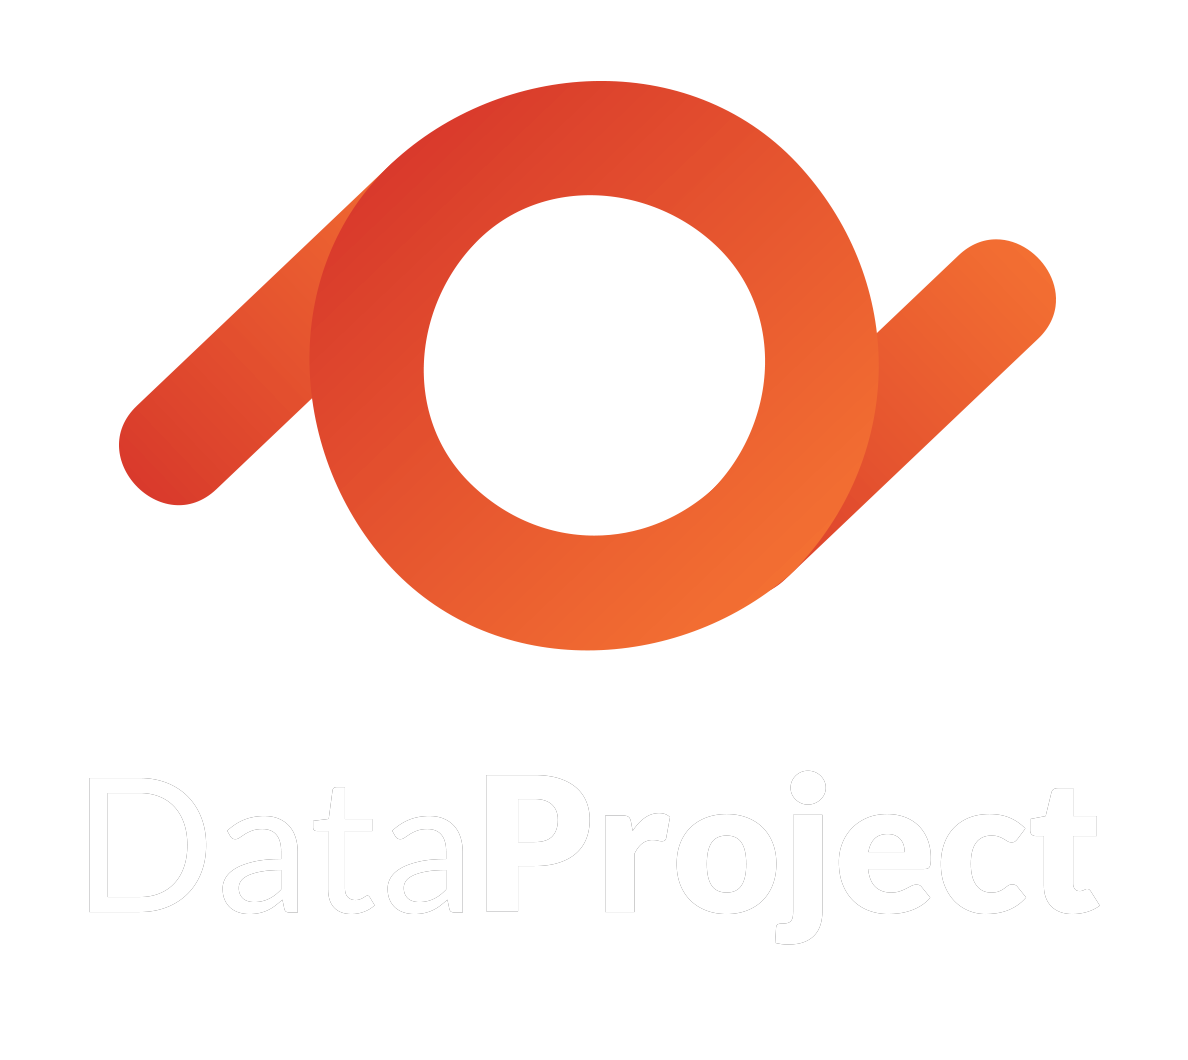 DATAPROJECT